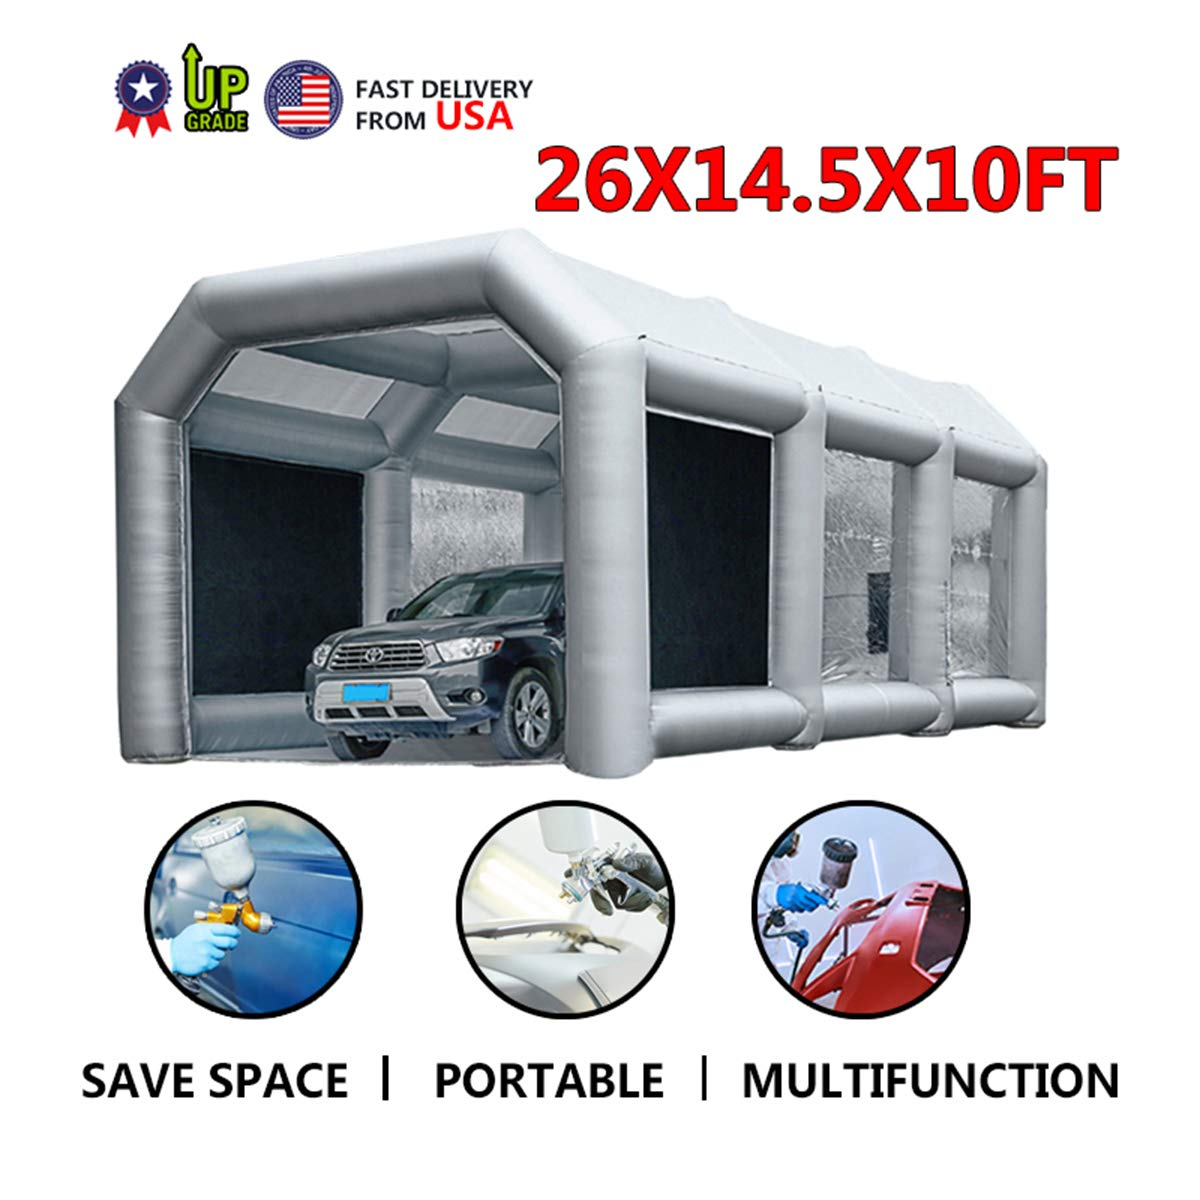 Inflatable Spray Booth Paint Tent Mobile Portable Car Workstation Filtration System Environmental Solutions 26x14.5x10 FT